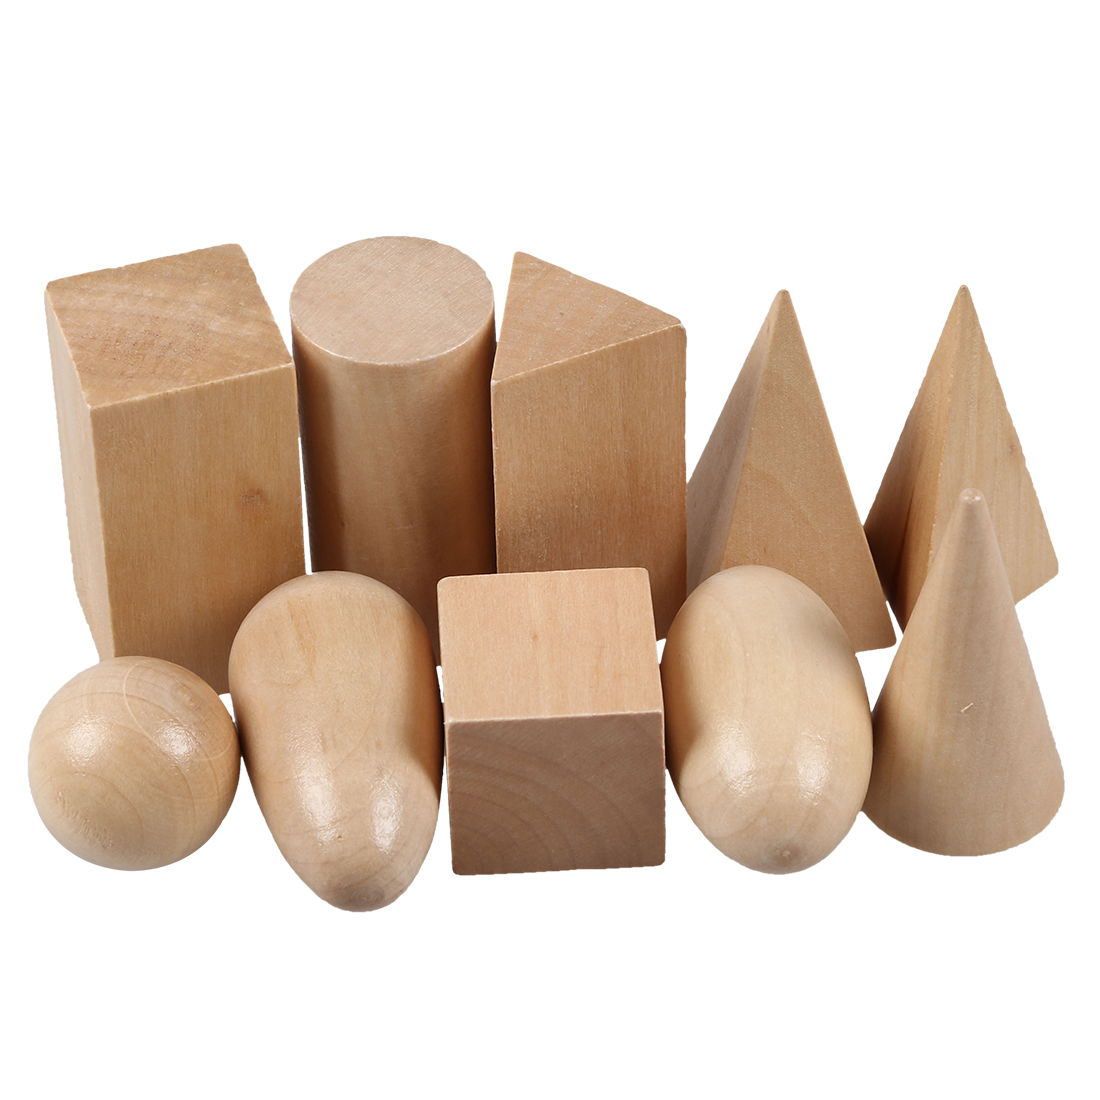 5 pack Wooden Montessori Mystery Bag Geometry Blocks Set Educational Cognitive Toys<br>